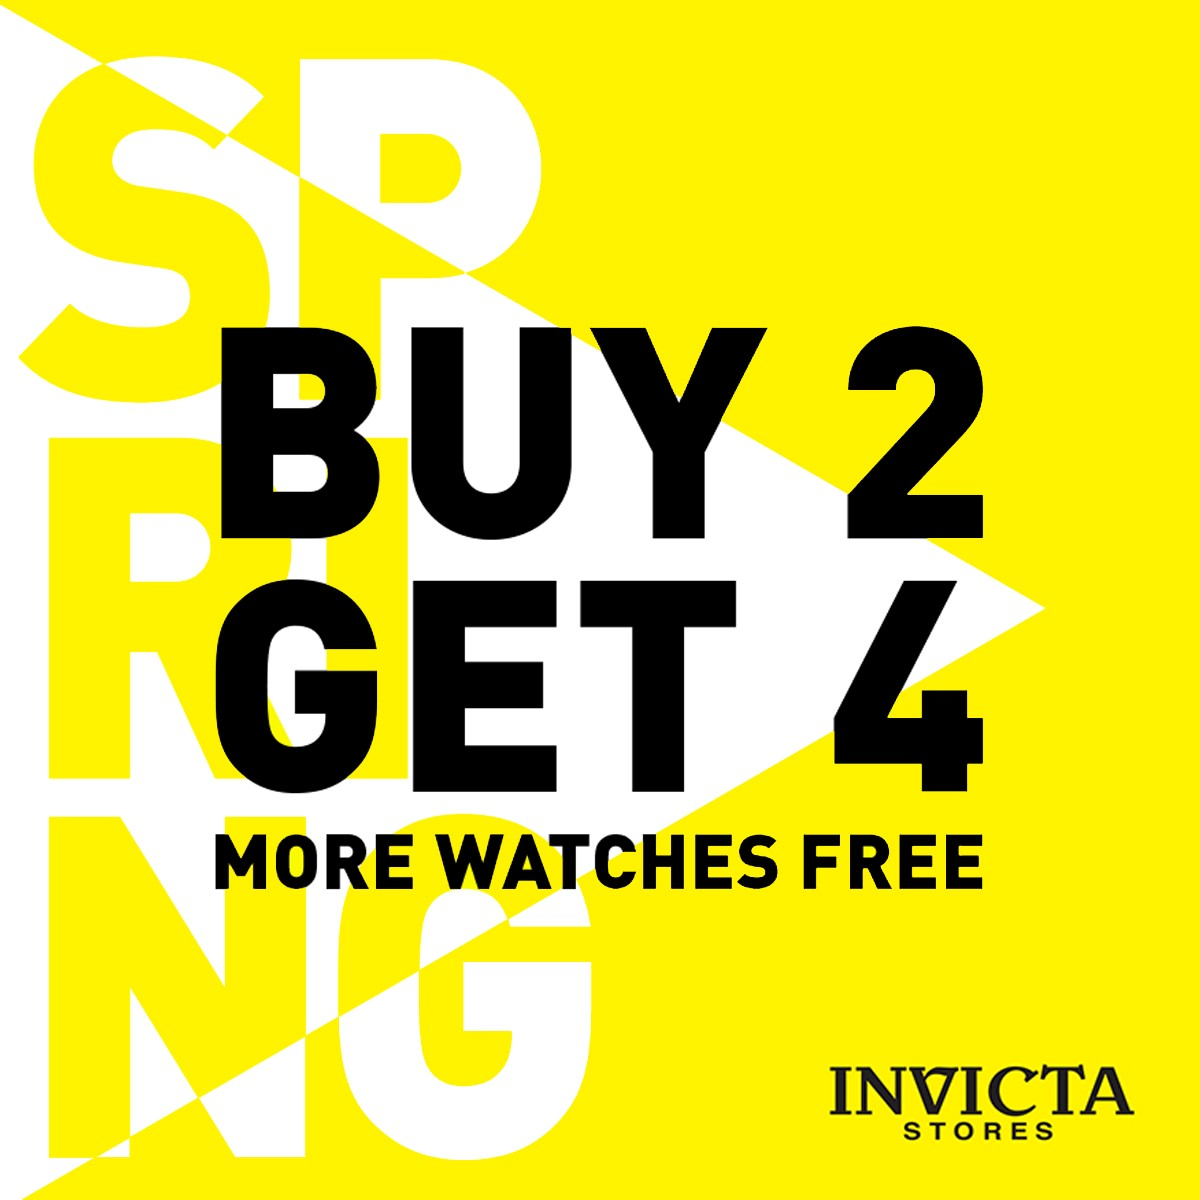 Invicta's Spring Sale! Buy 2 & Get 4 More Watches FREE!